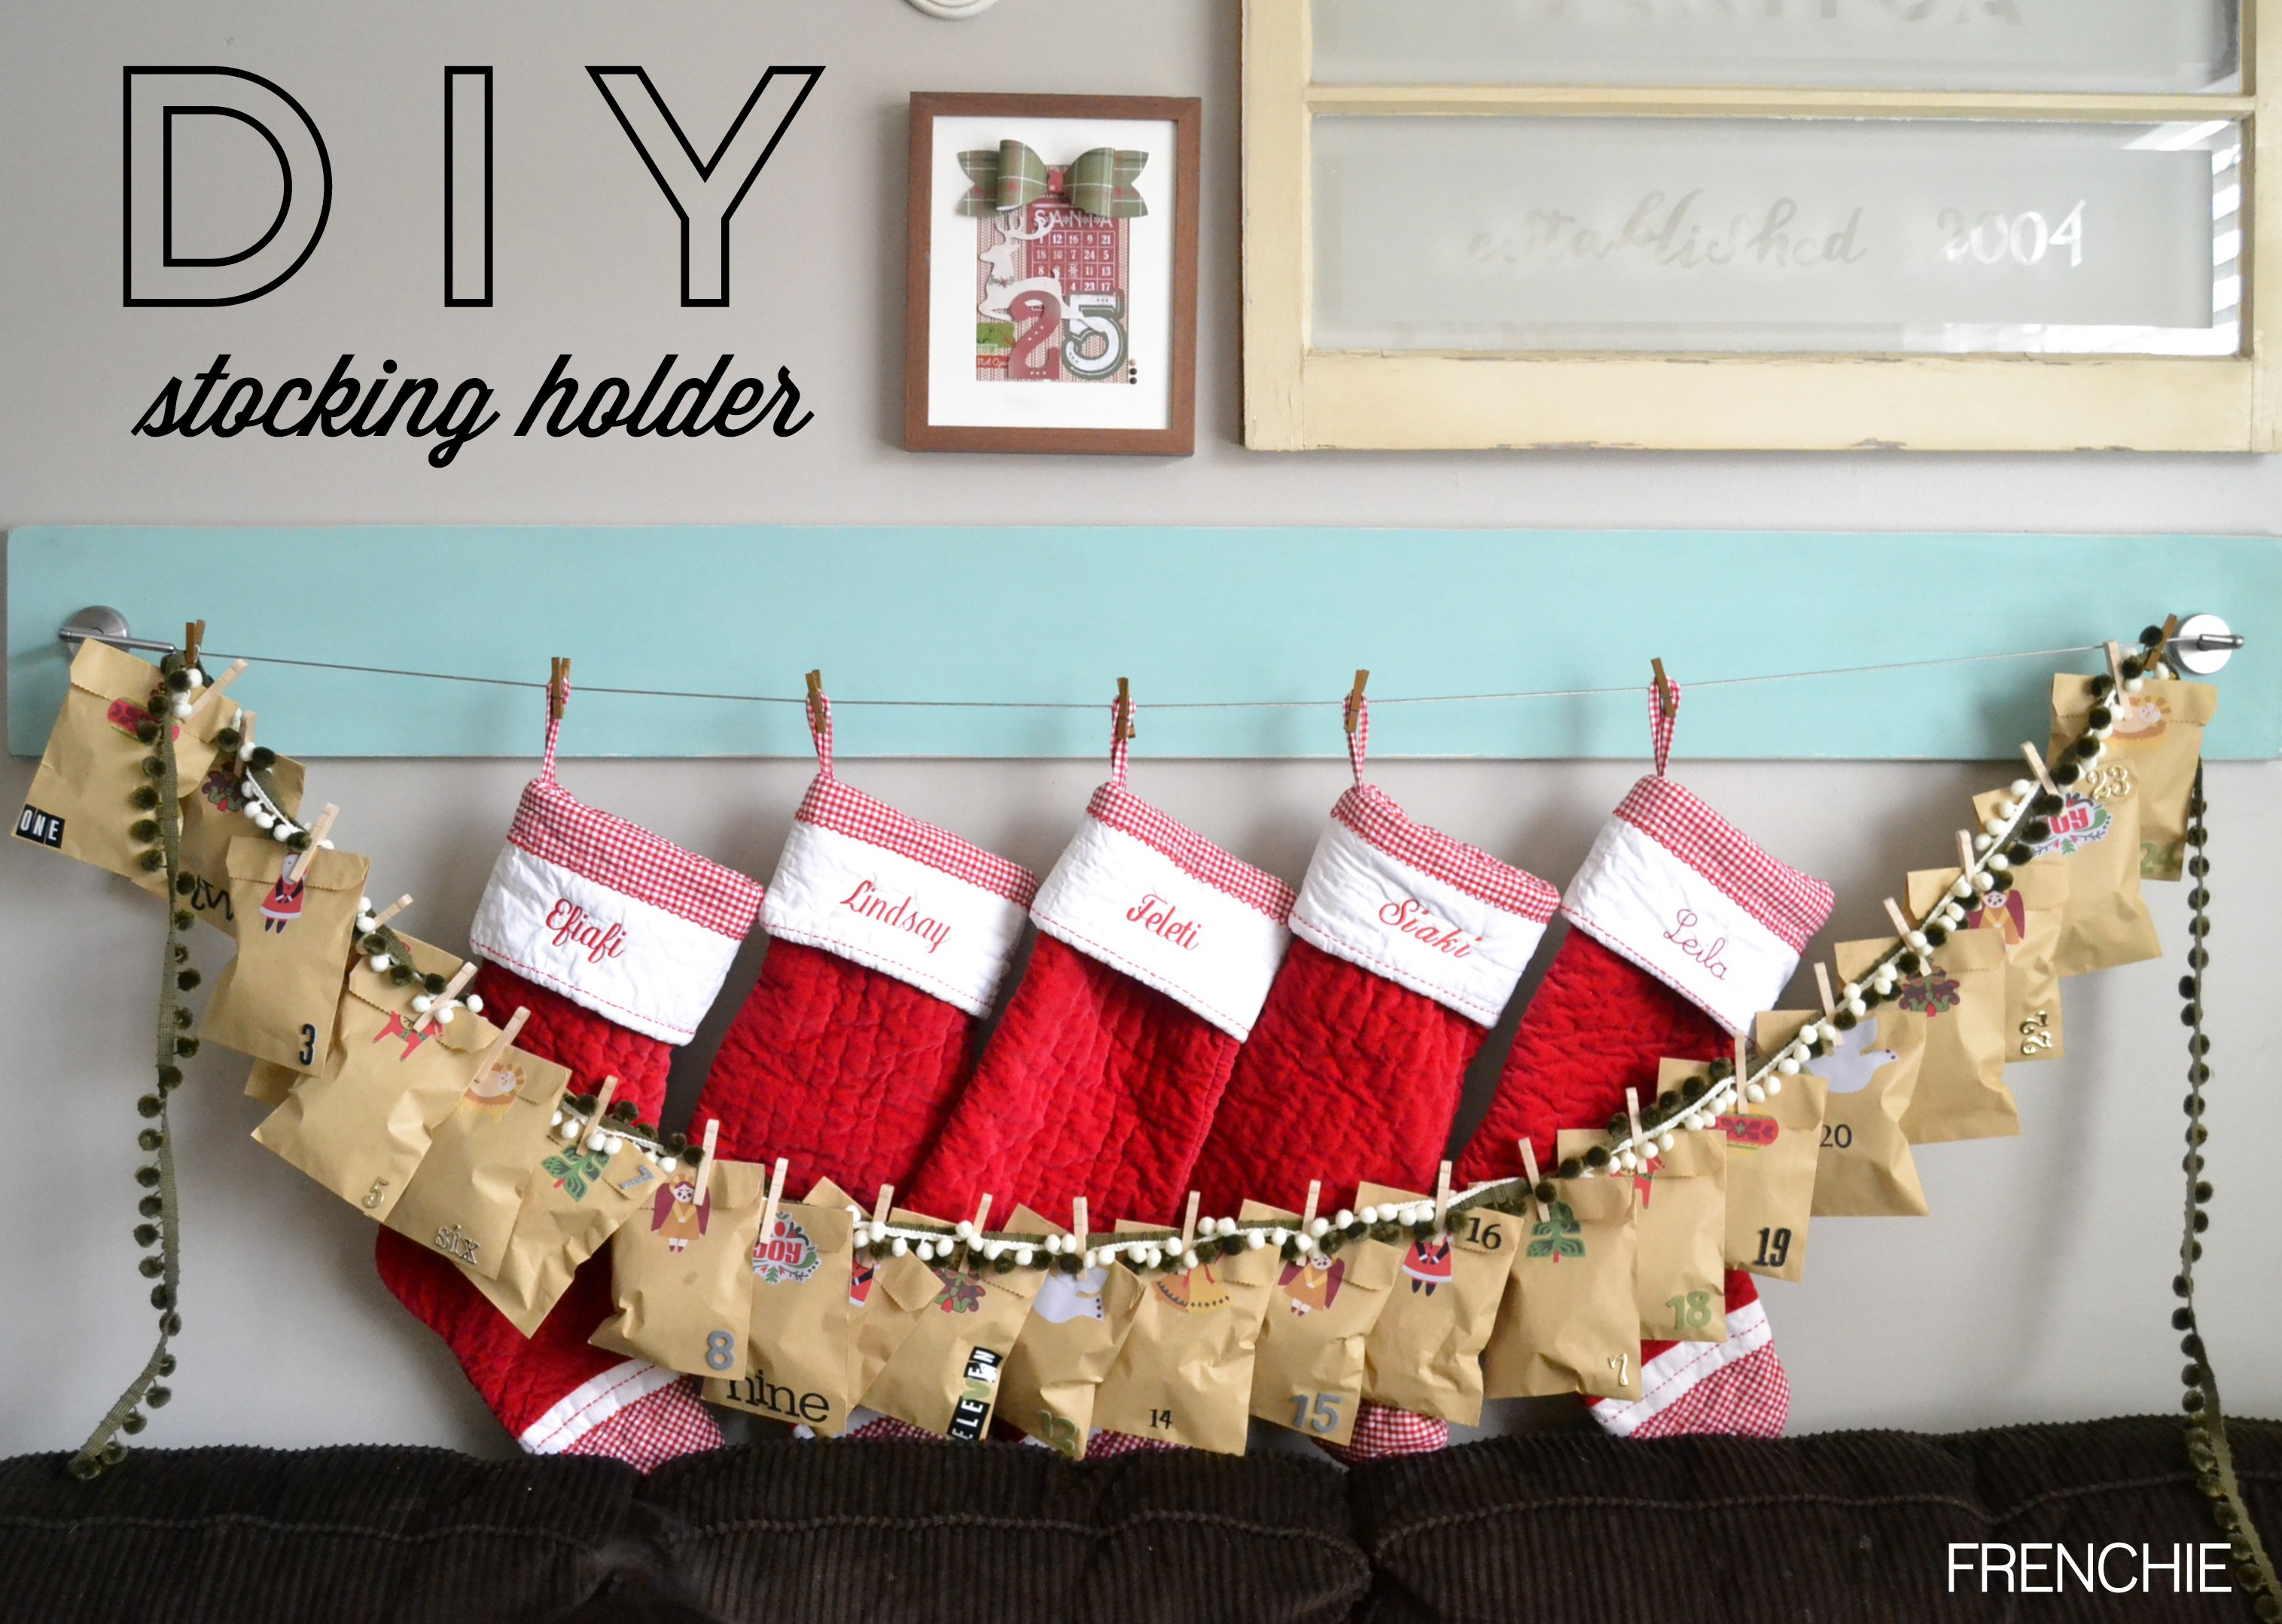 Captivating stocking holder for interior decor ideas with christmas stocking holders